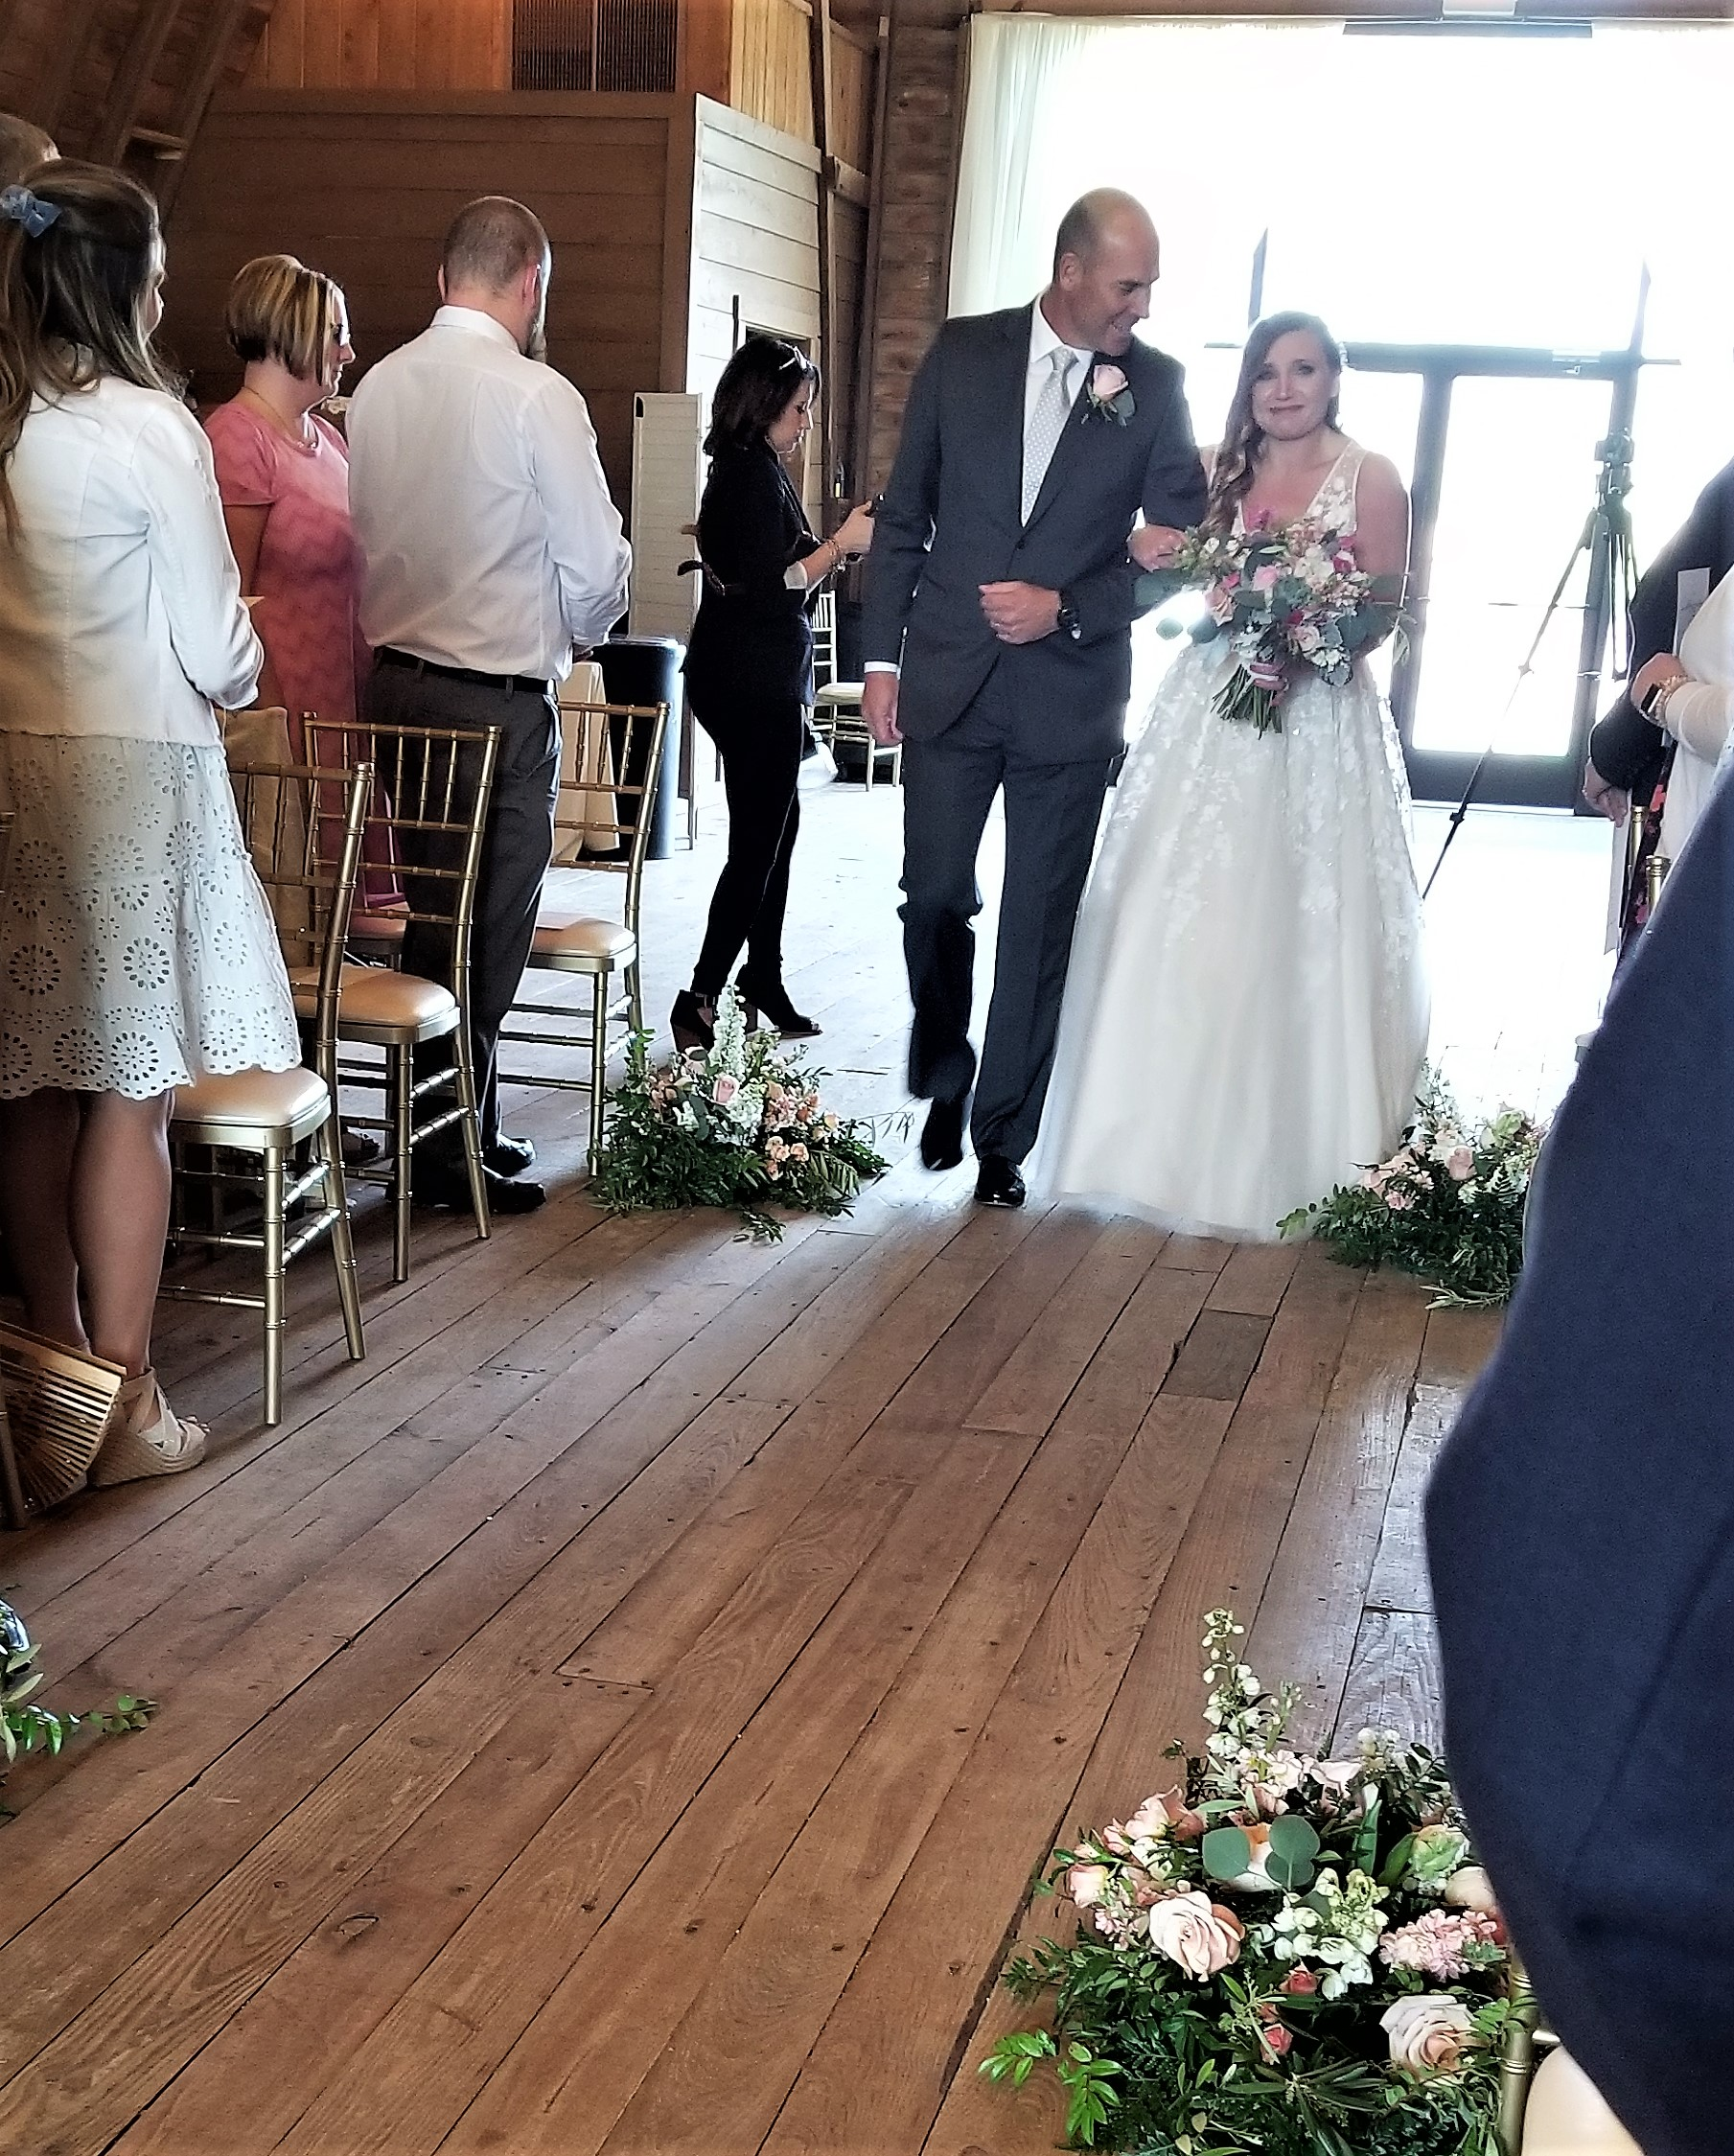 A teary bride and a proud dad!